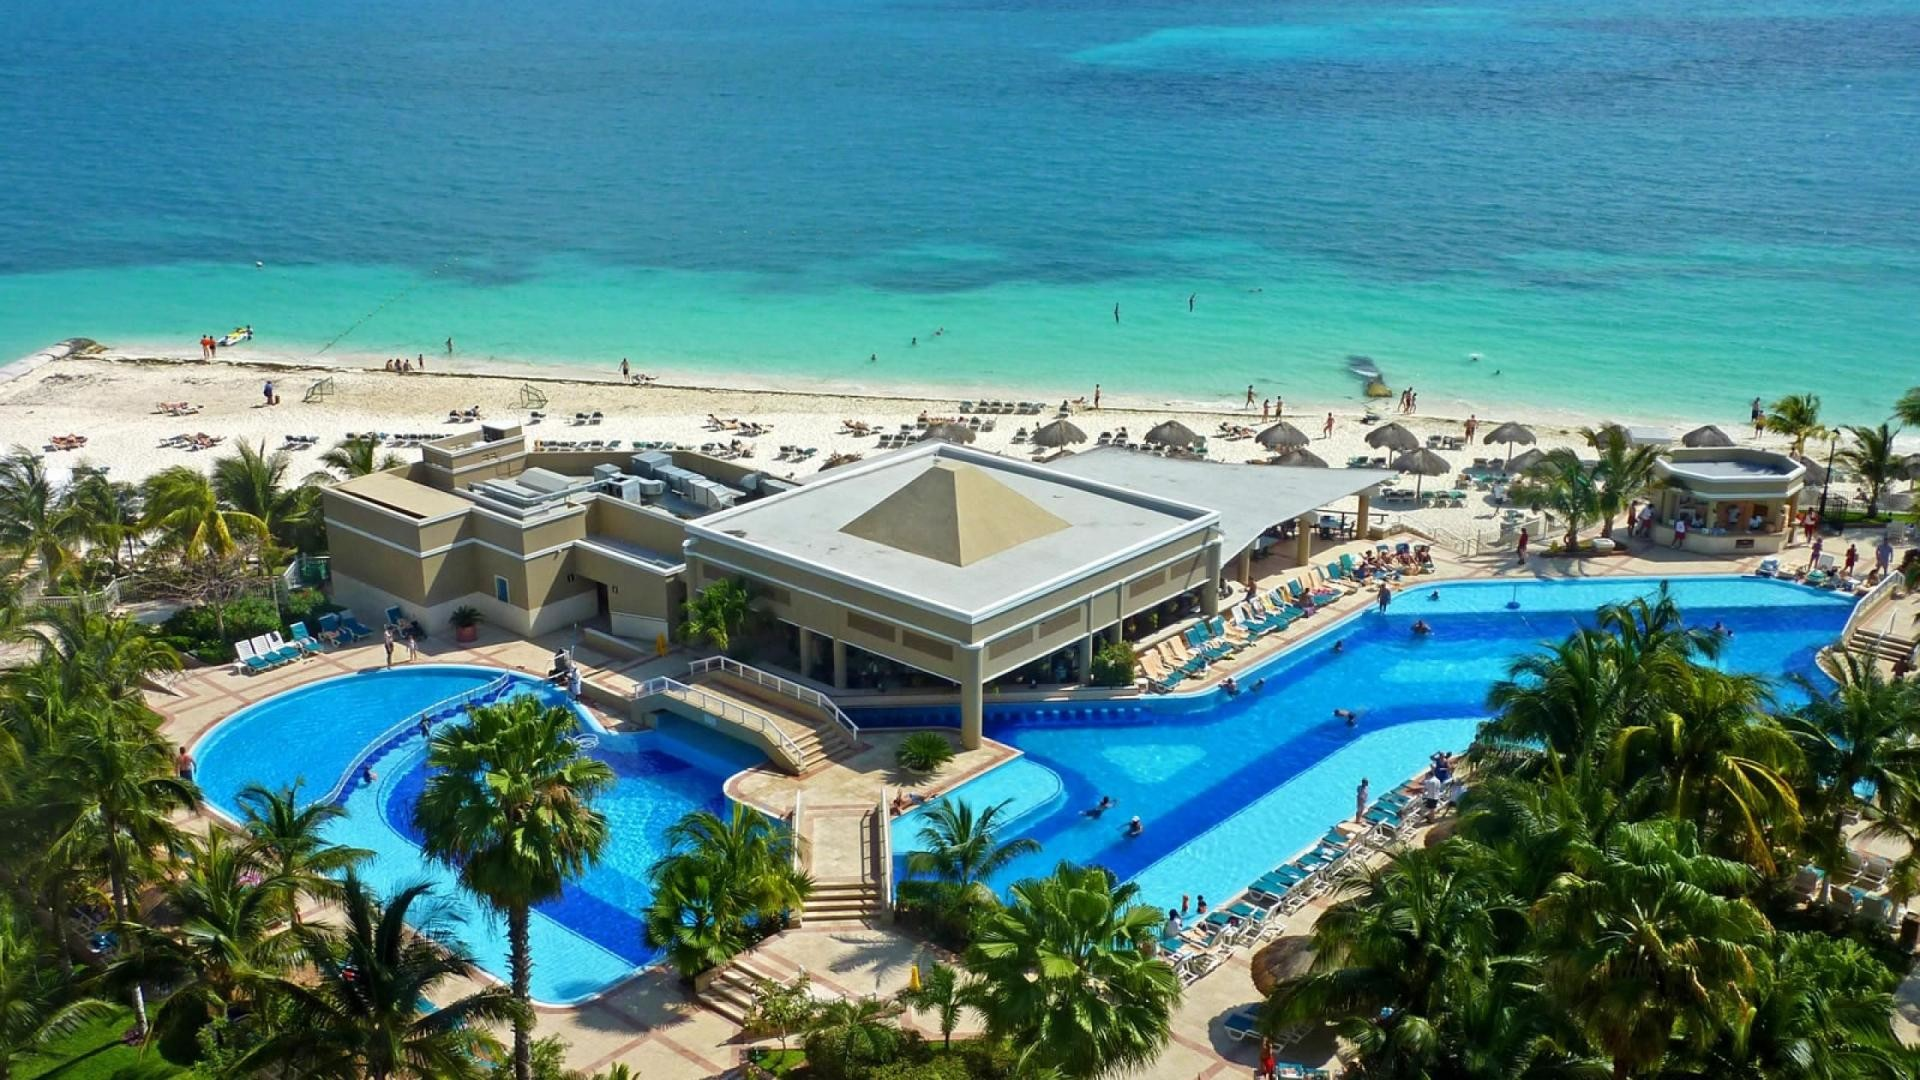 world caribbean beach resort hd wallpaper for desktop Car Pictures .